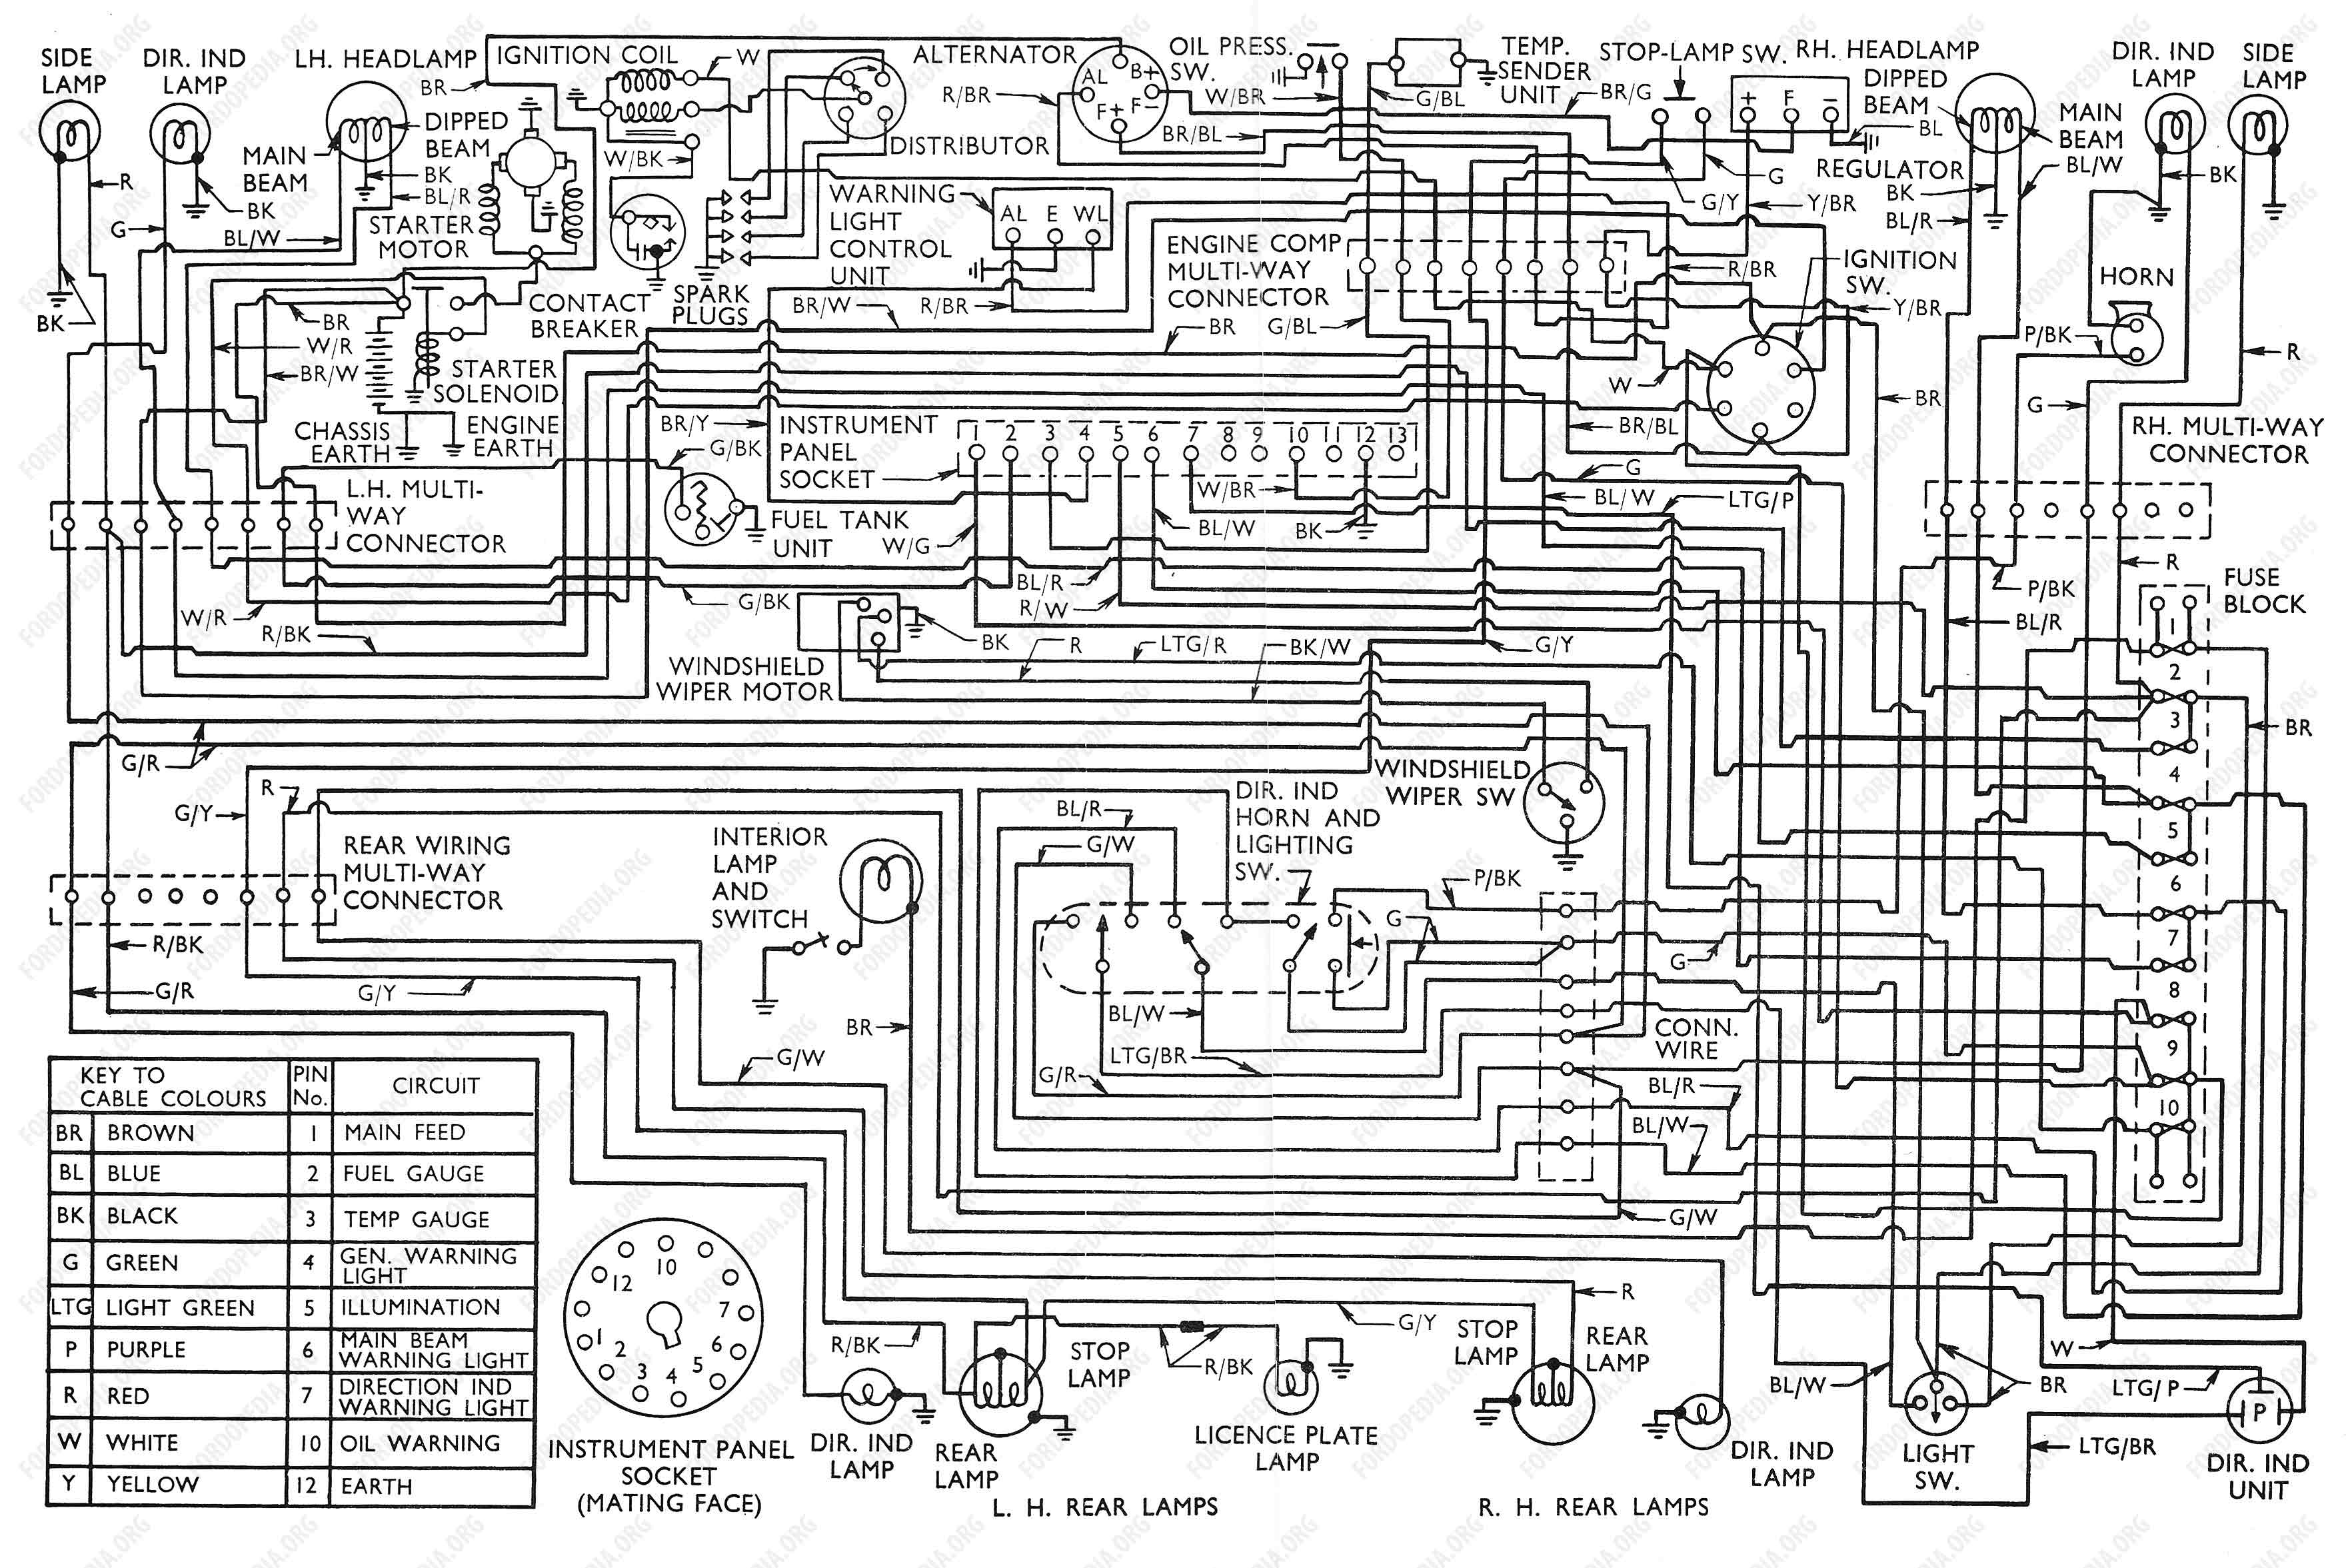 wiring diagram petrol fordopedia org ford transit wiring diagram at gsmx.co